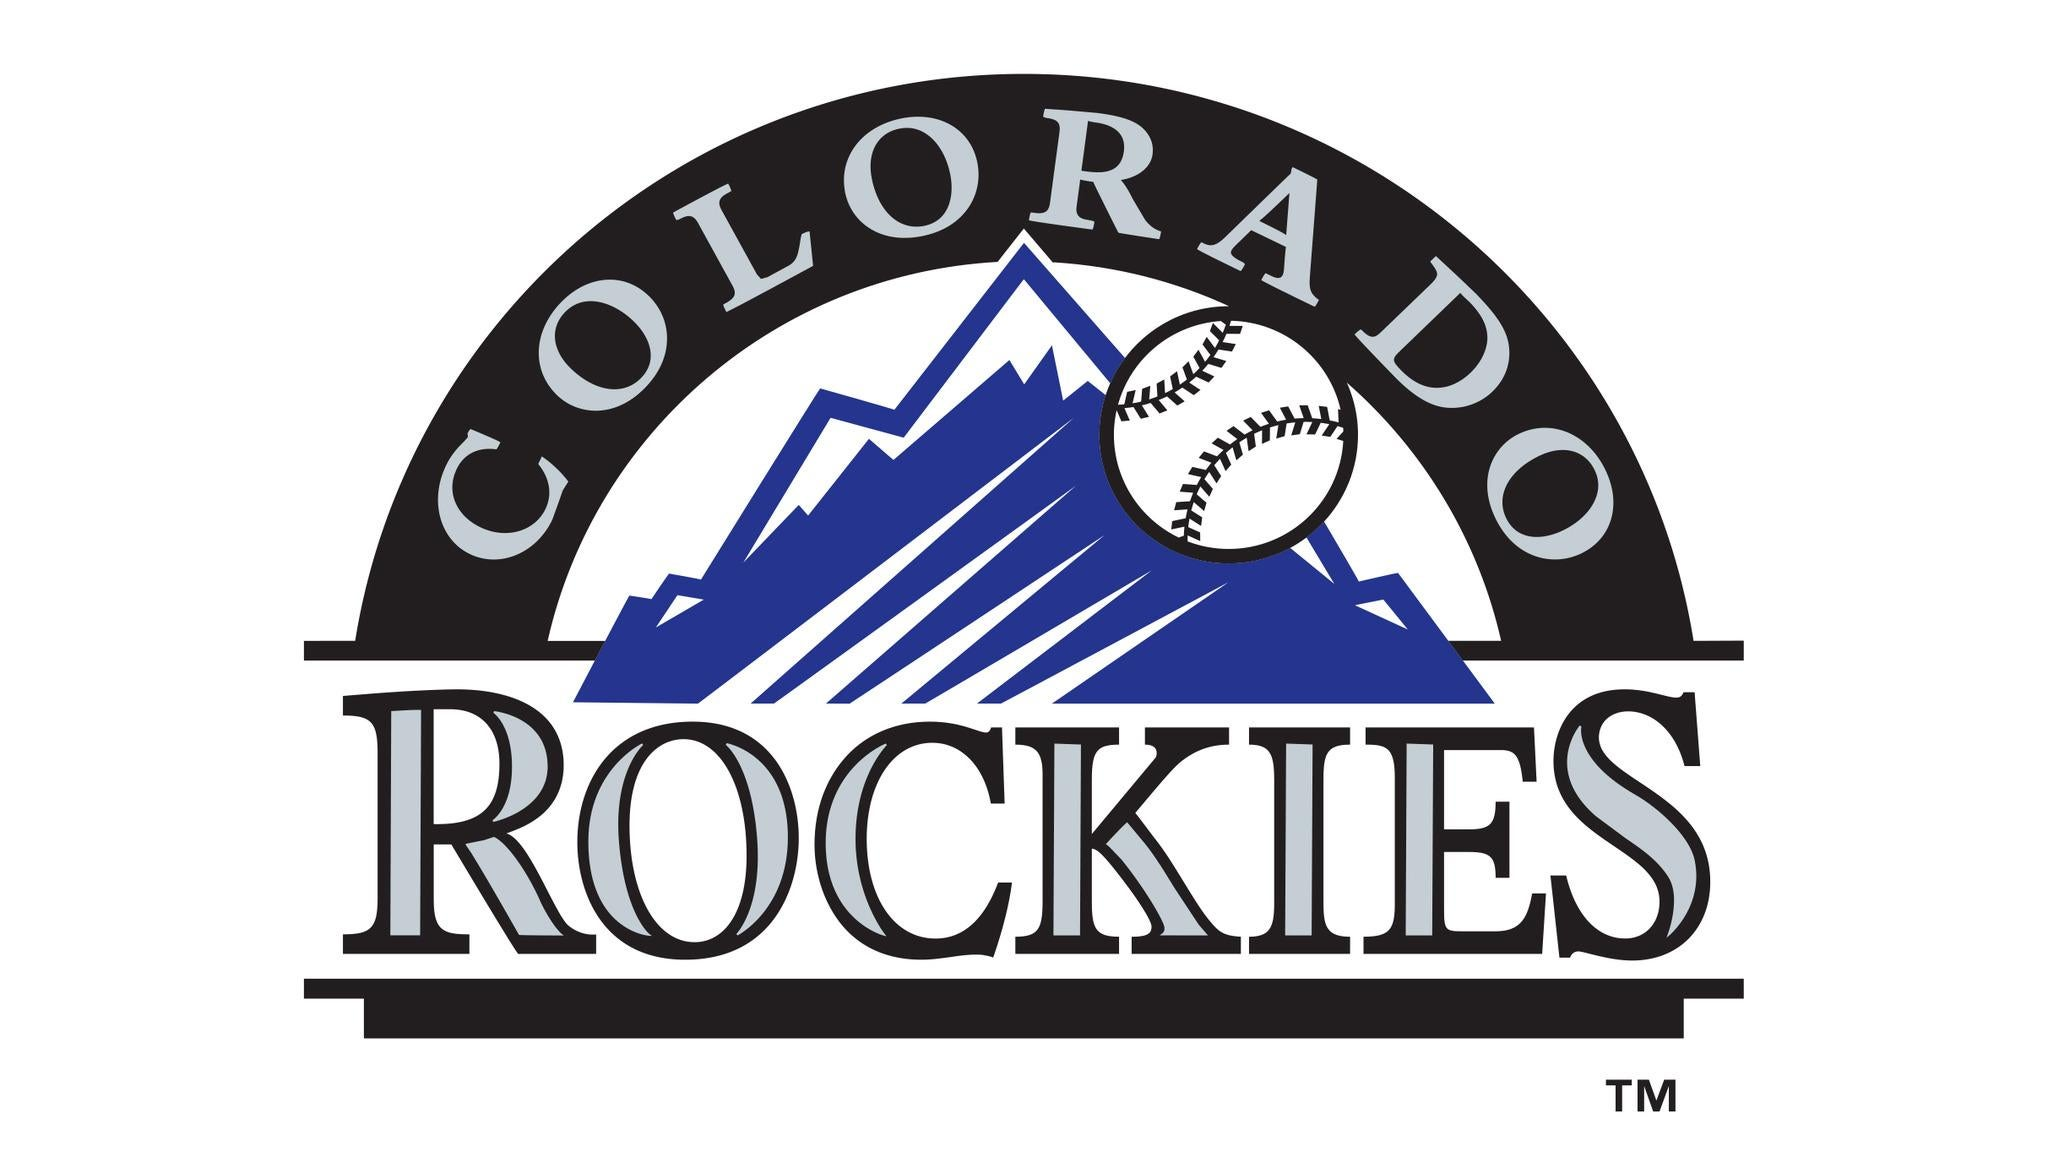 Colorado Rockies vs. Atlanta Braves at Coors Field